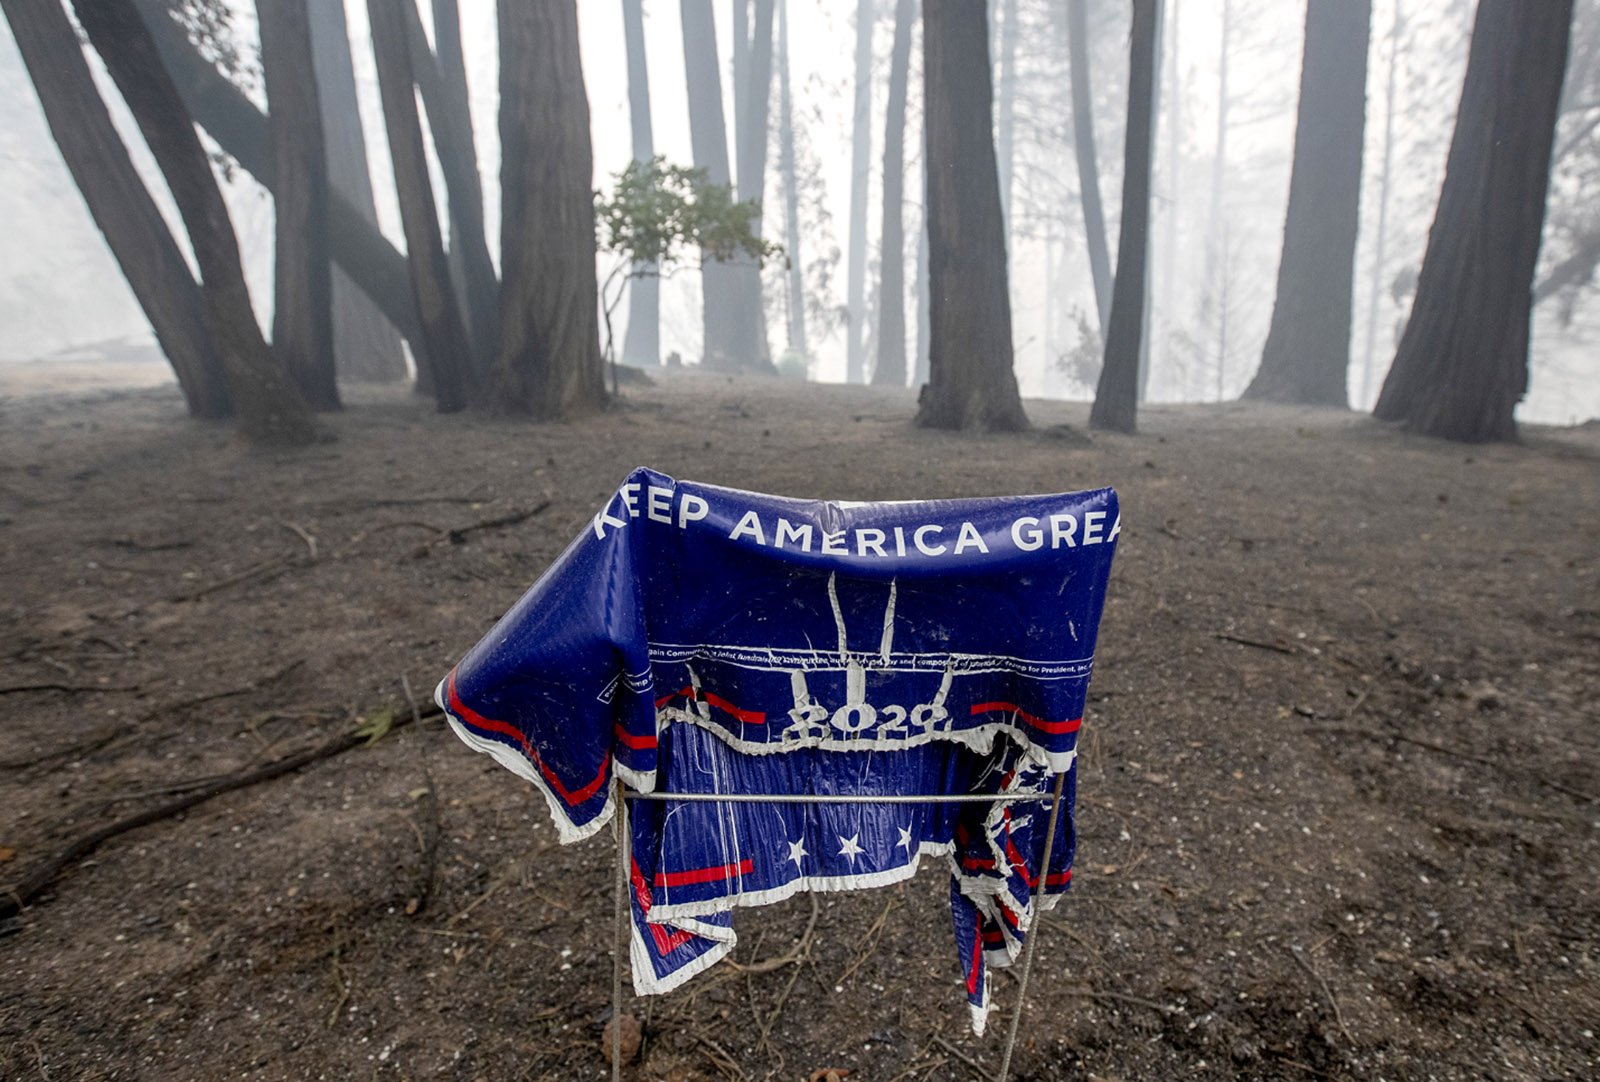 A melted Trump/Pence campaign sign after the Bear Fire, Feather Falls, California